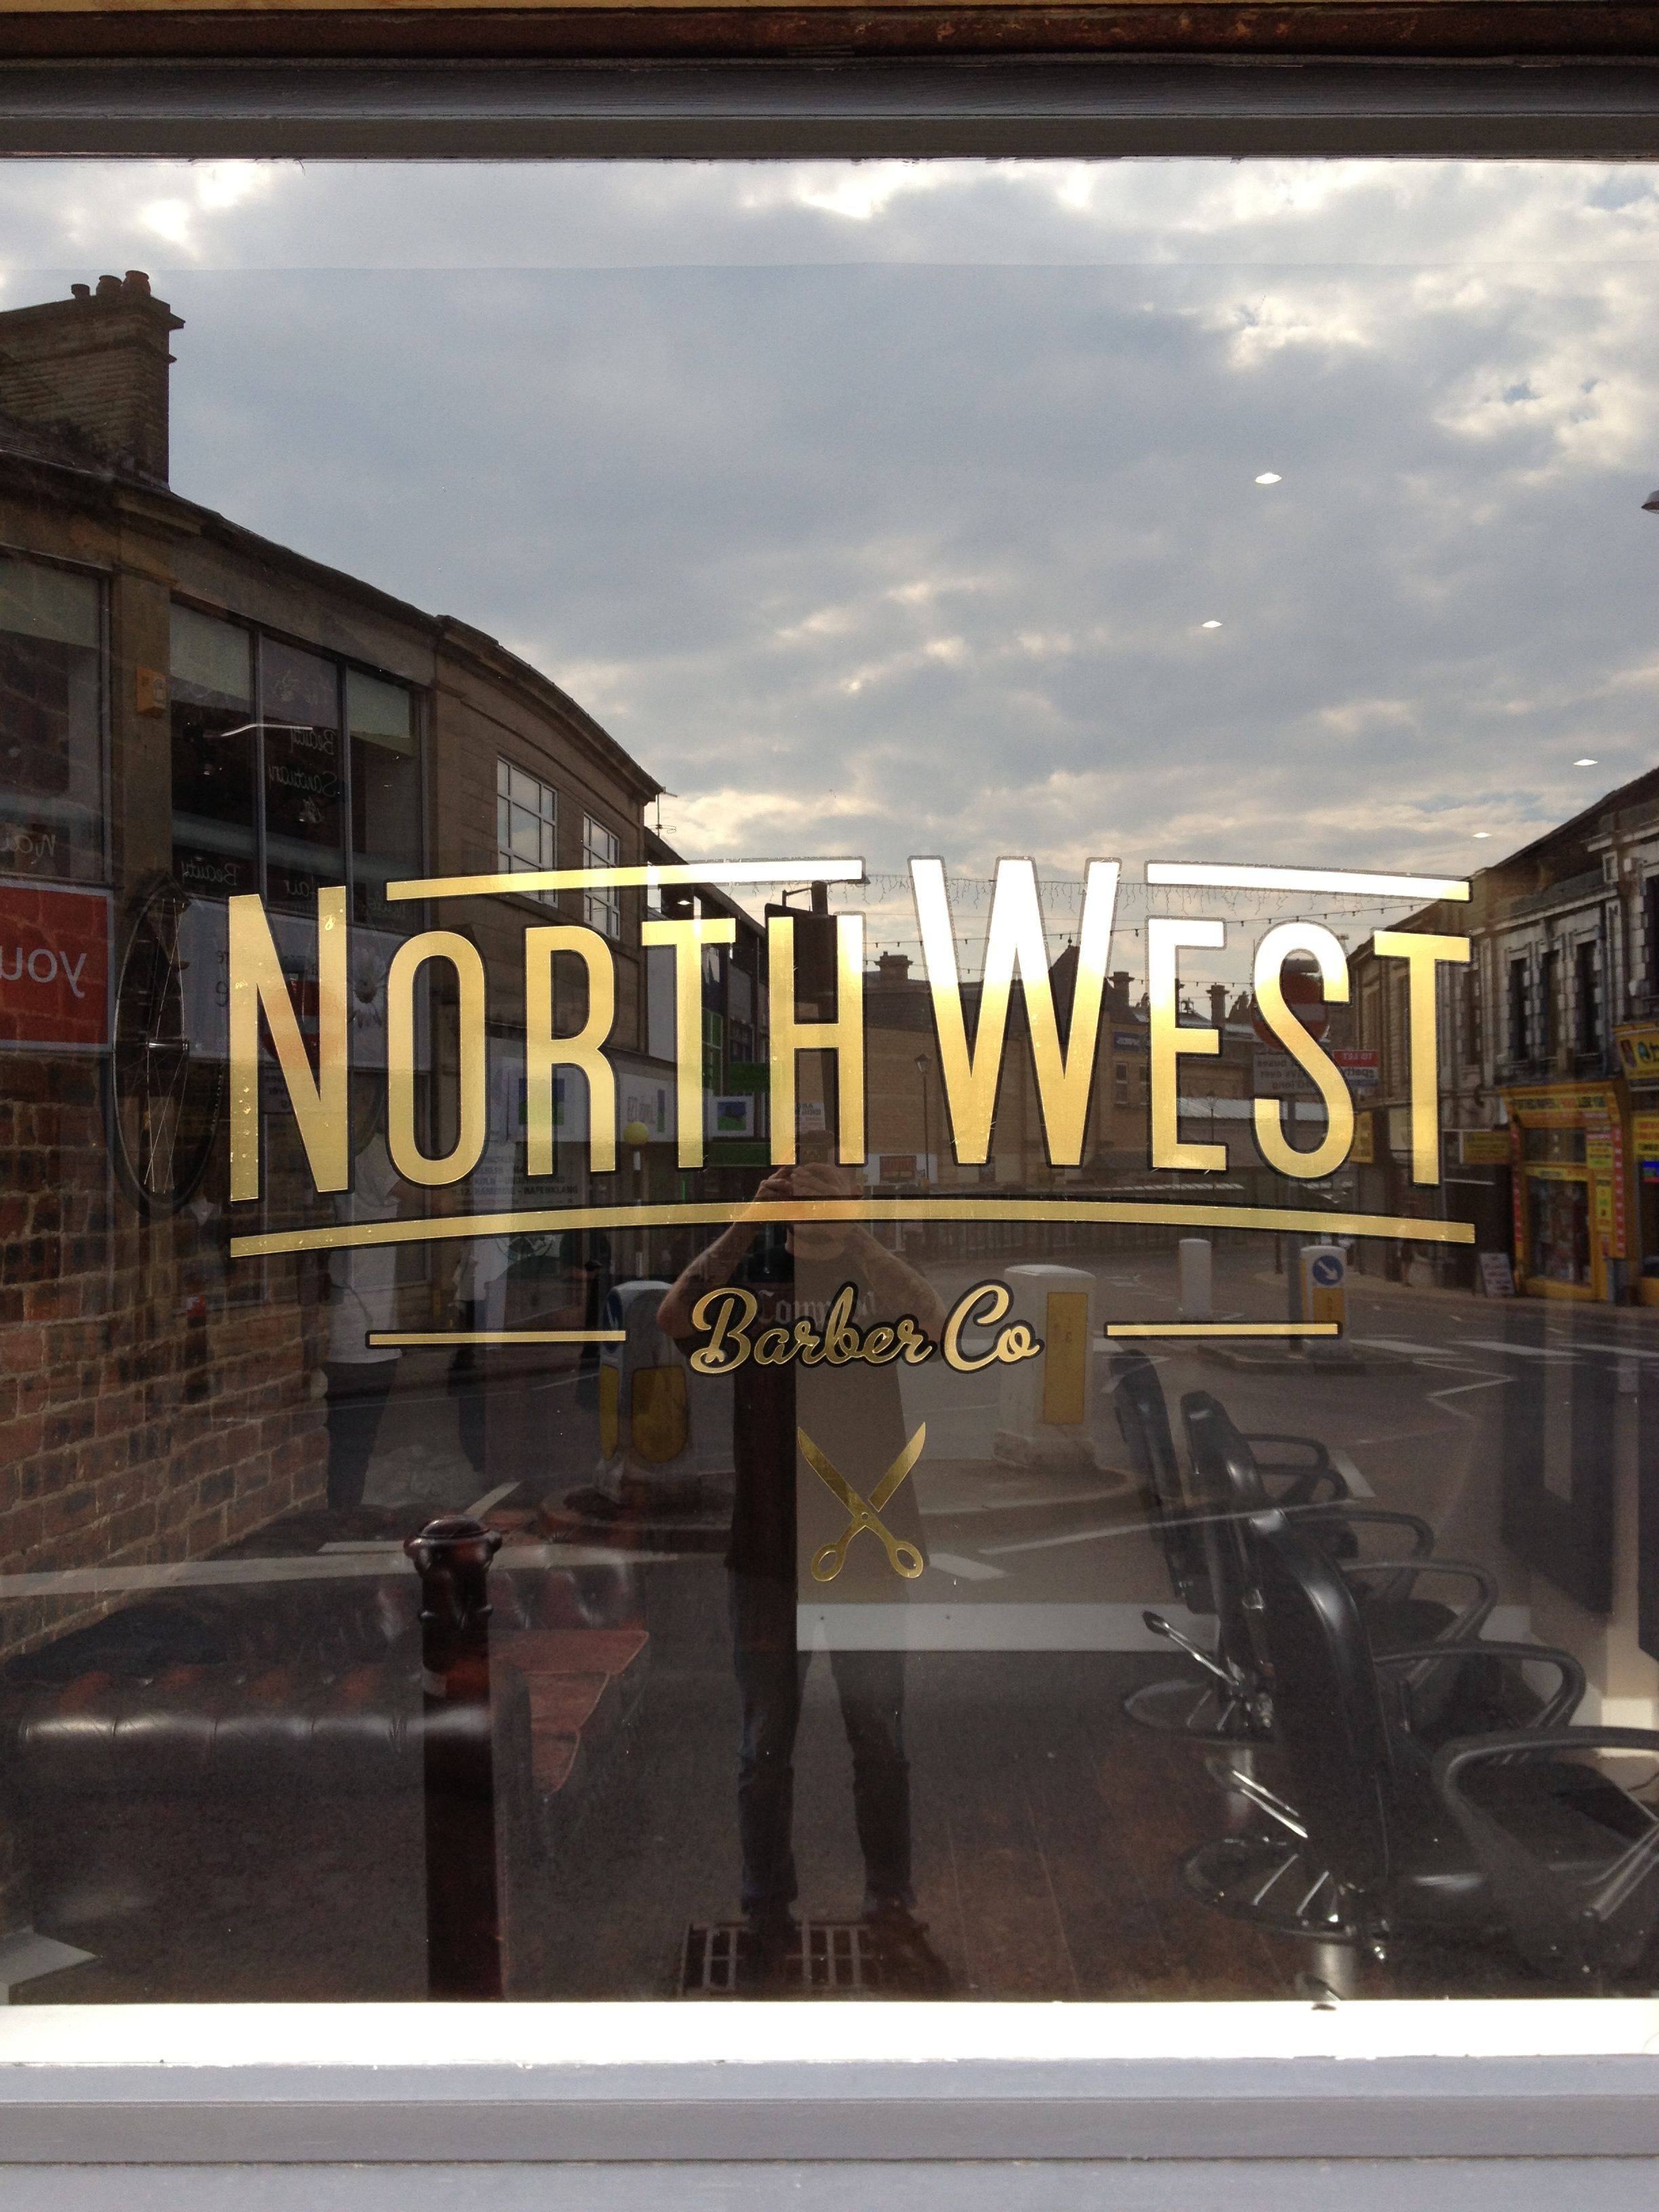 Old barber shop window - North West Barber Co Gold Window Graphic